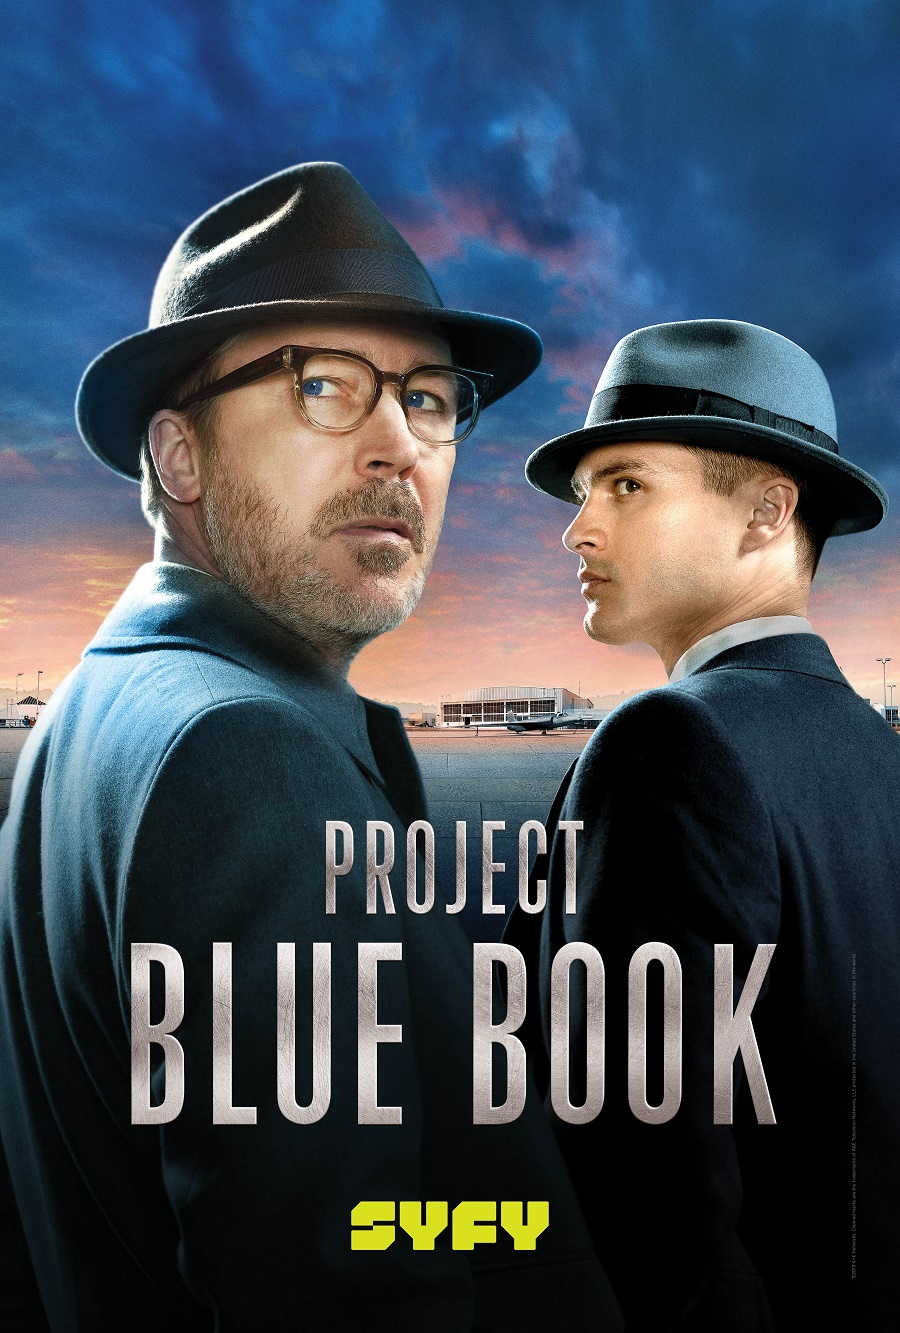 SYFY UK Acquires Historys UFO Drama Project Blue Book